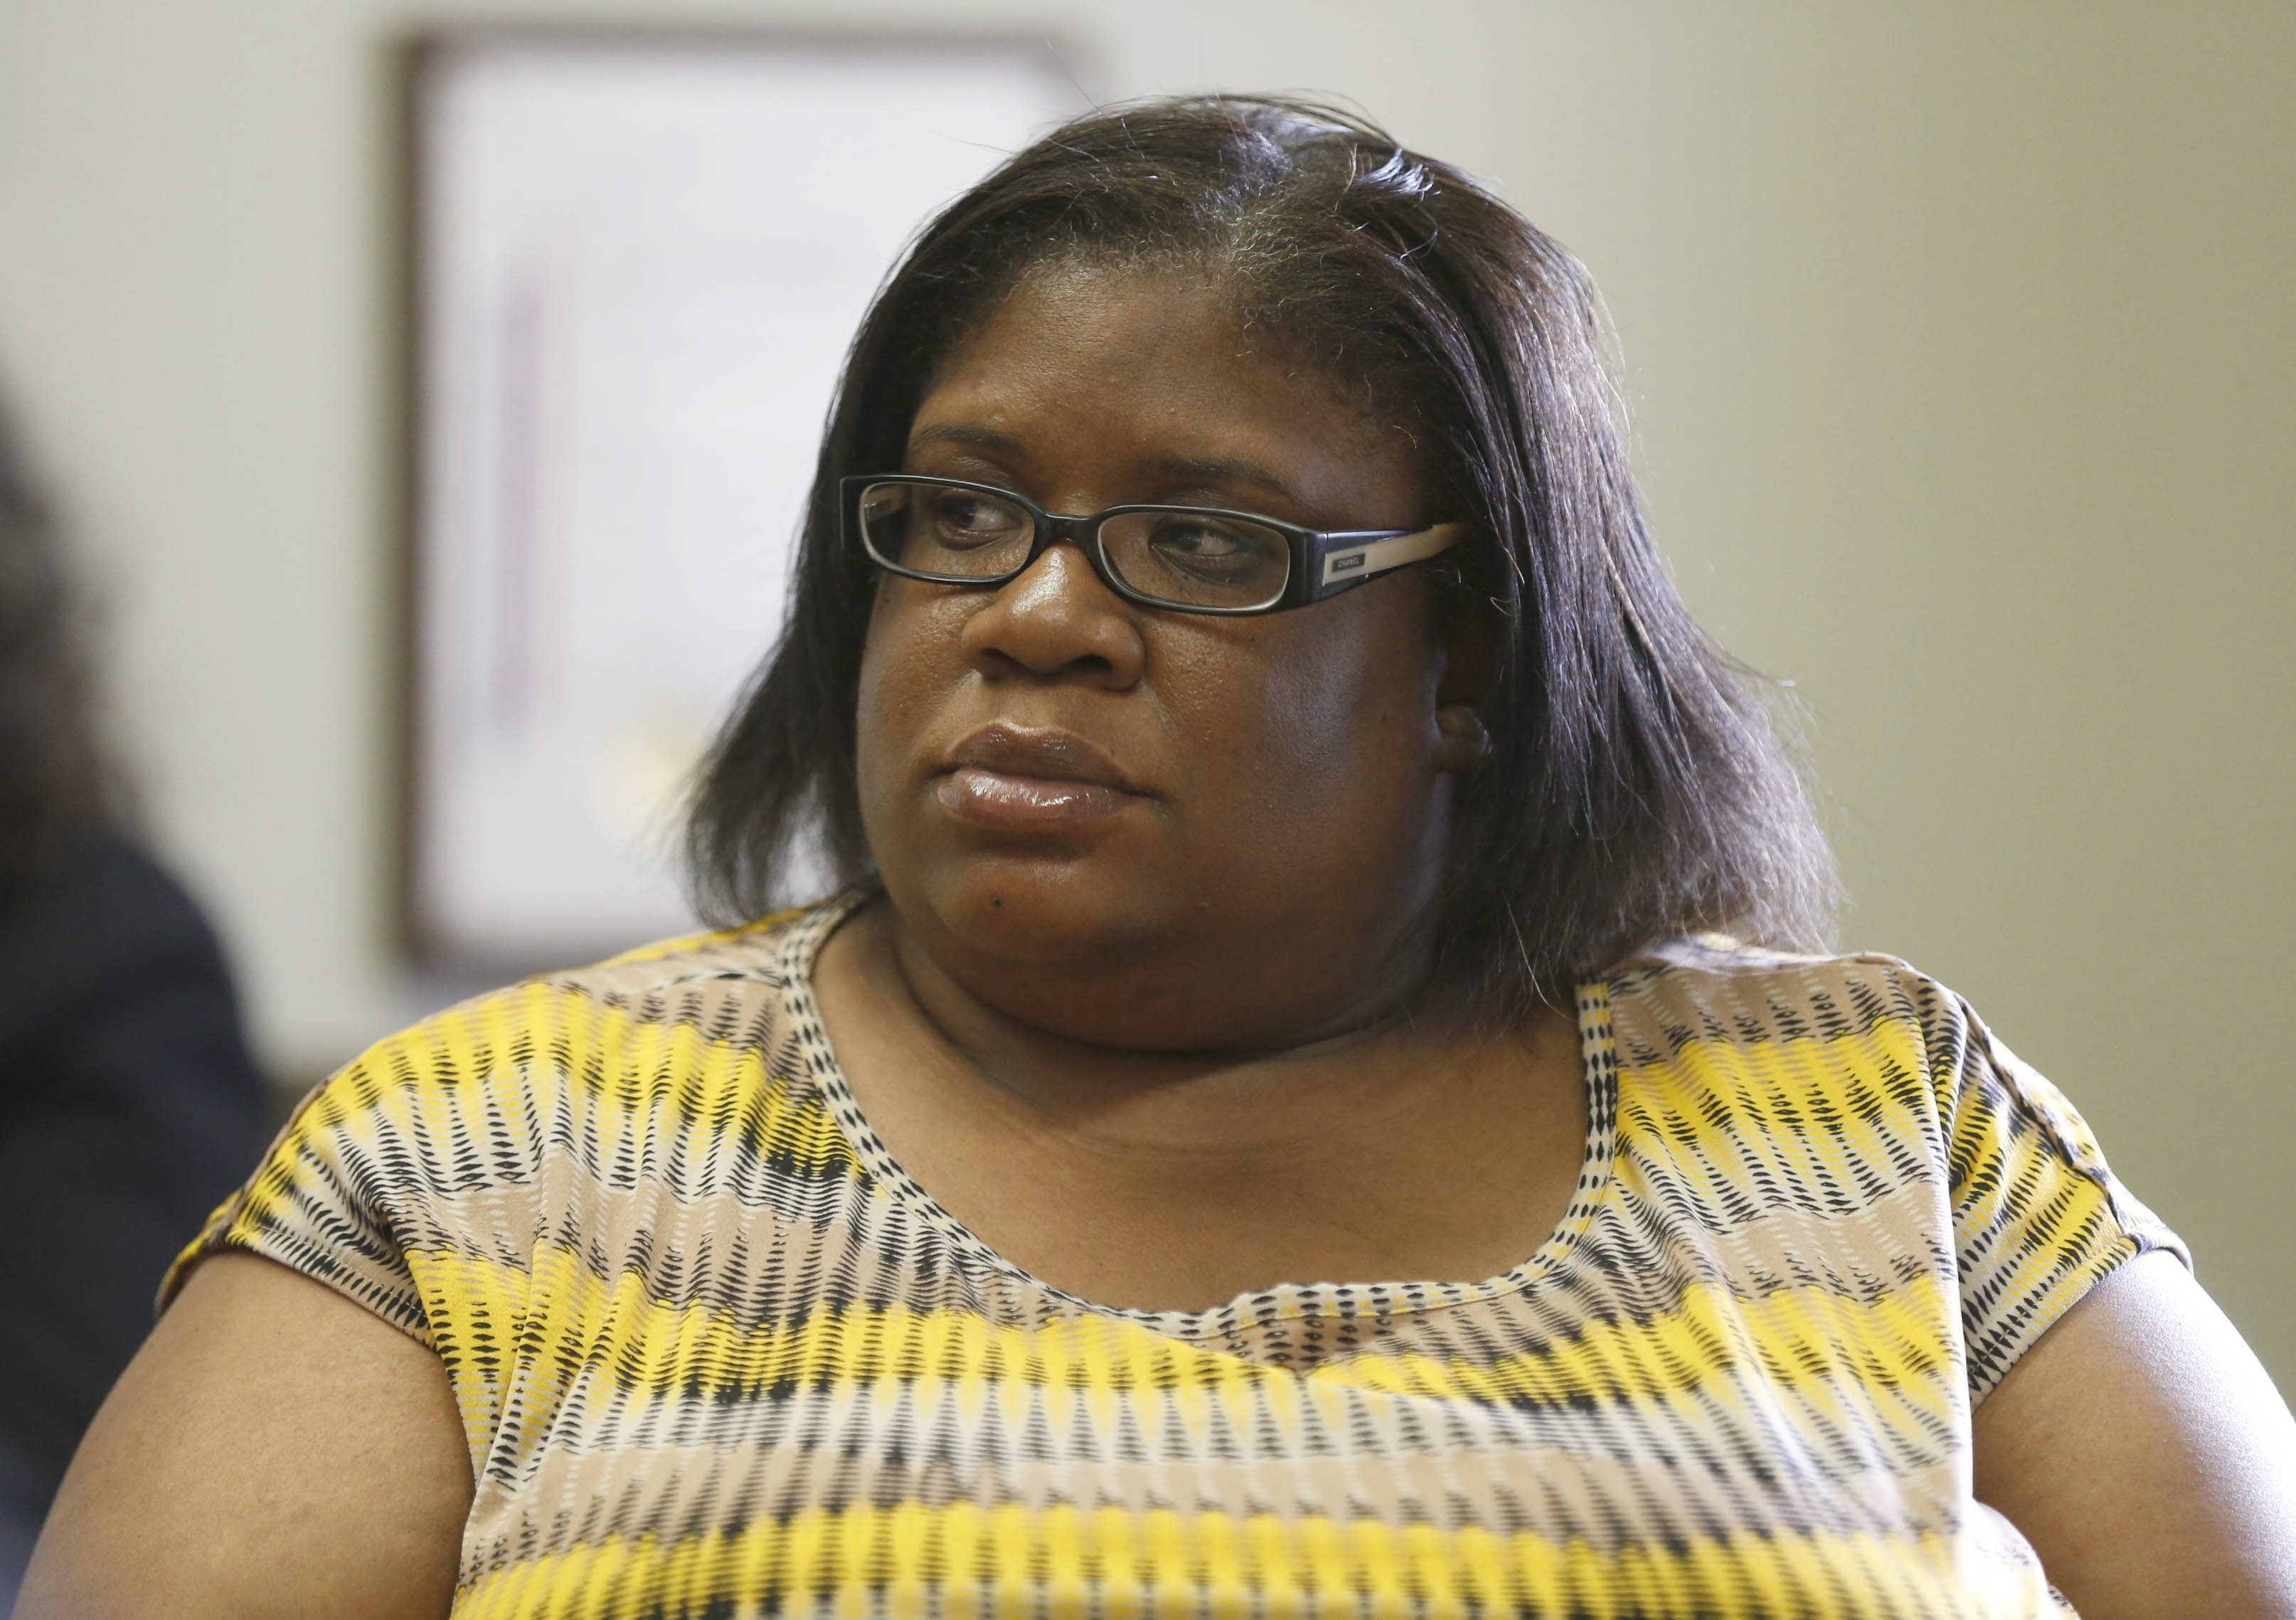 Rashondra M. Martin could be focus of Wednesday discussion on competence.